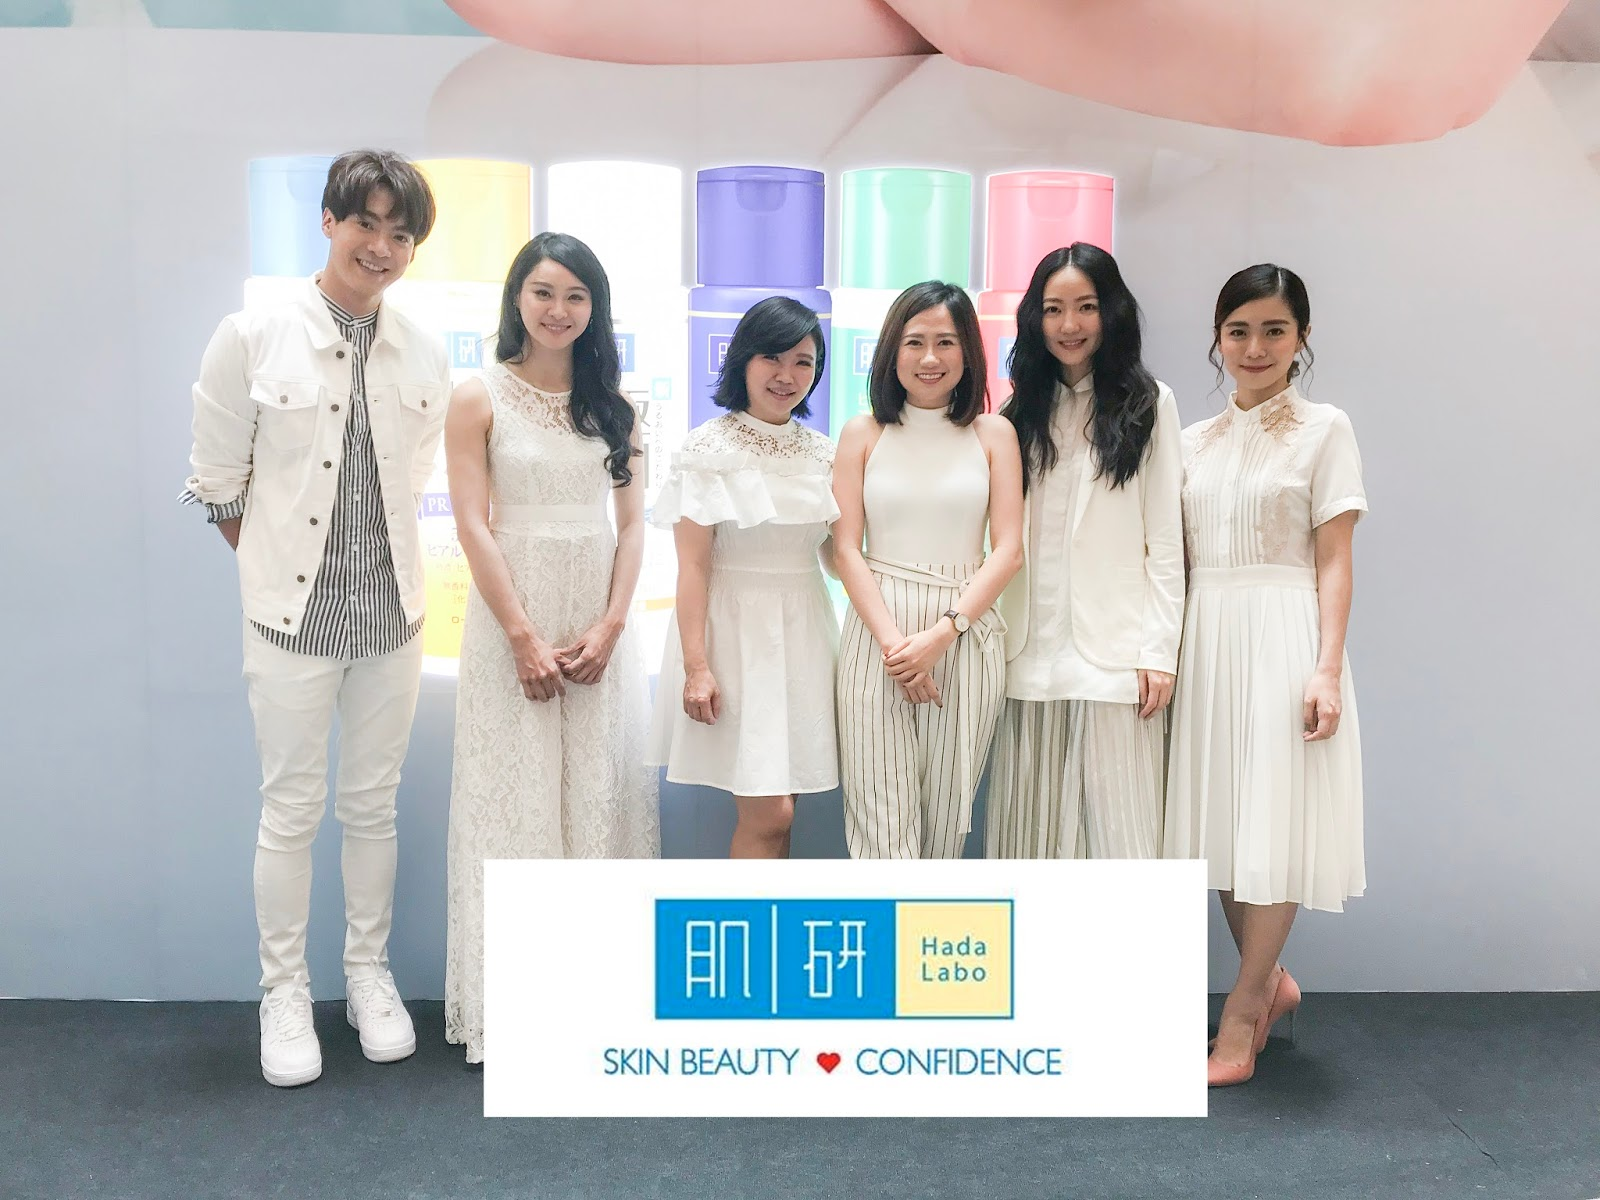 [Event] Hada Labo's Liu Yen Beauty Talk Show Features Popular Malaysian Celebrities